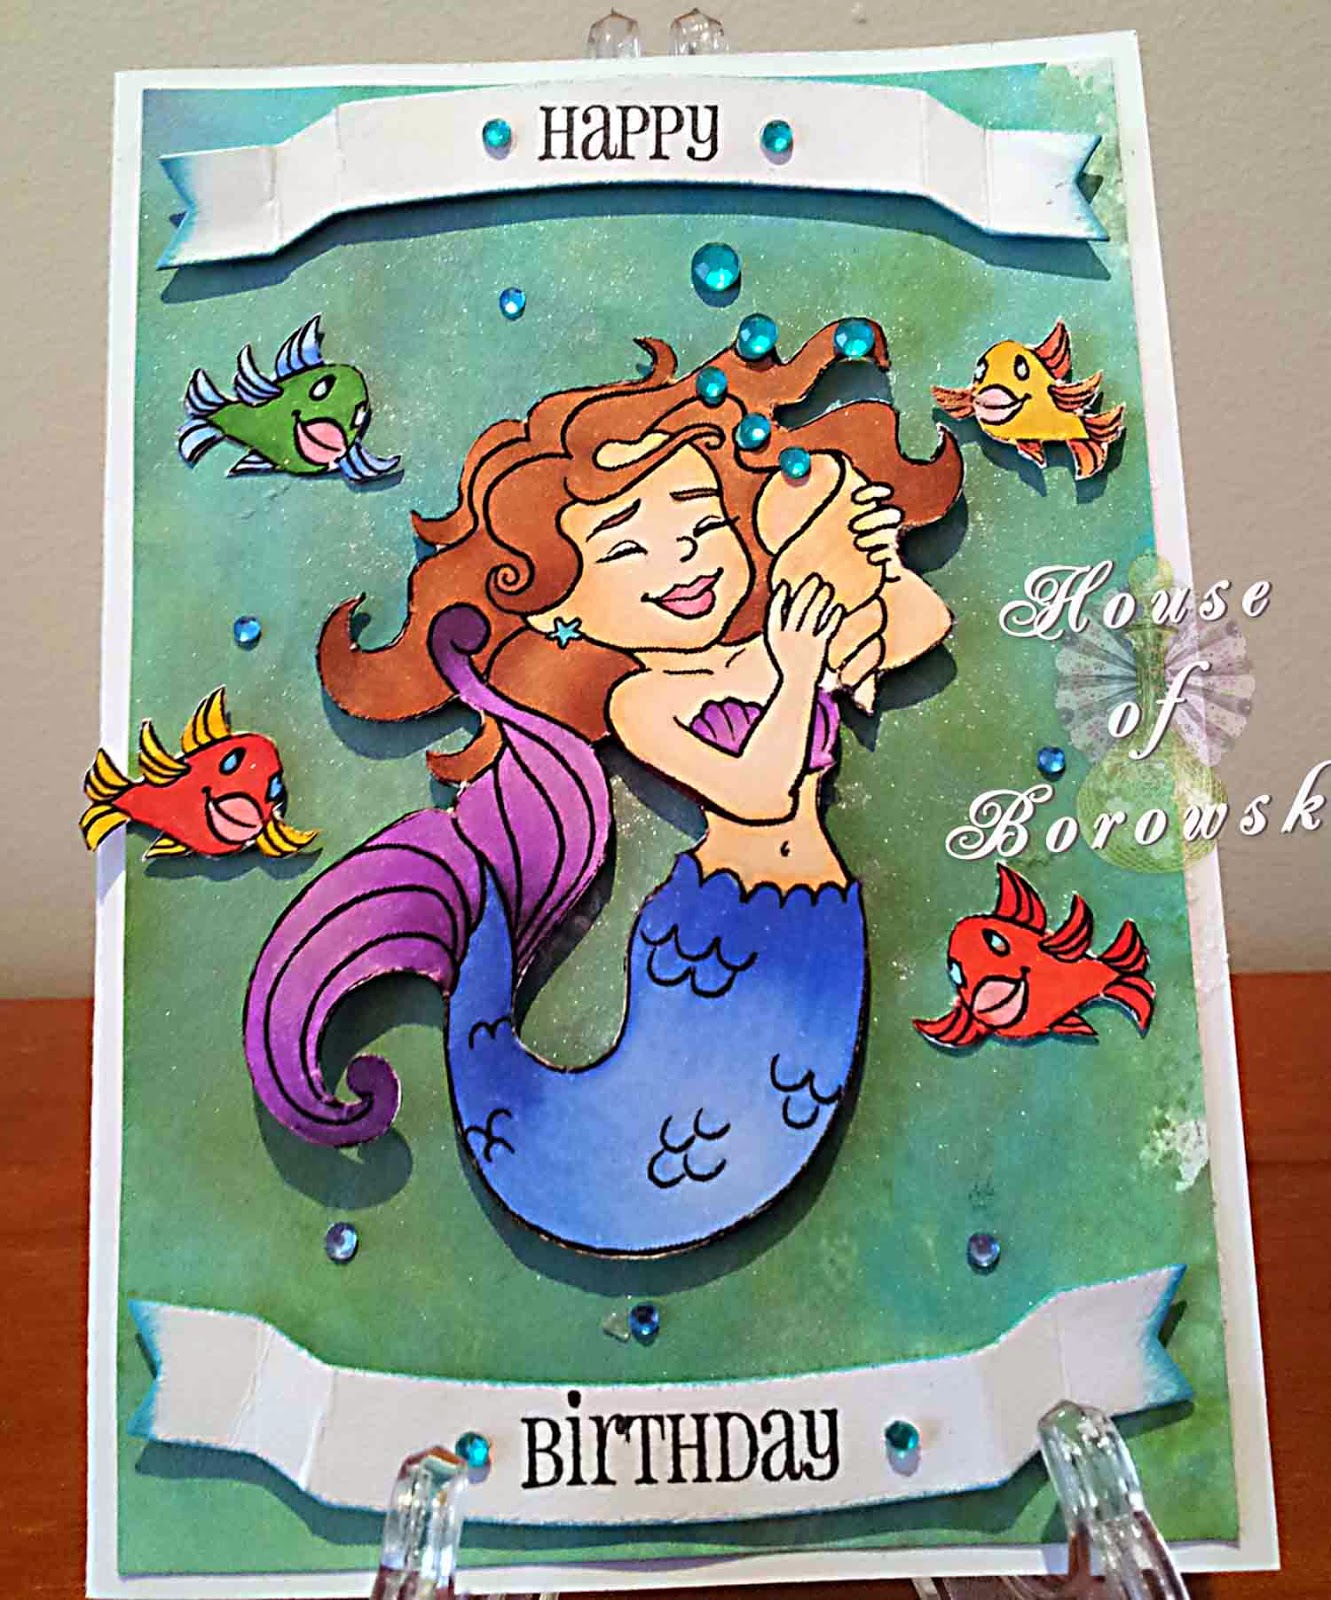 House of Borowski, Elizabeth O Dulemba, Distress Inks, Simon Says Stamps little banner, tattered angels sprays